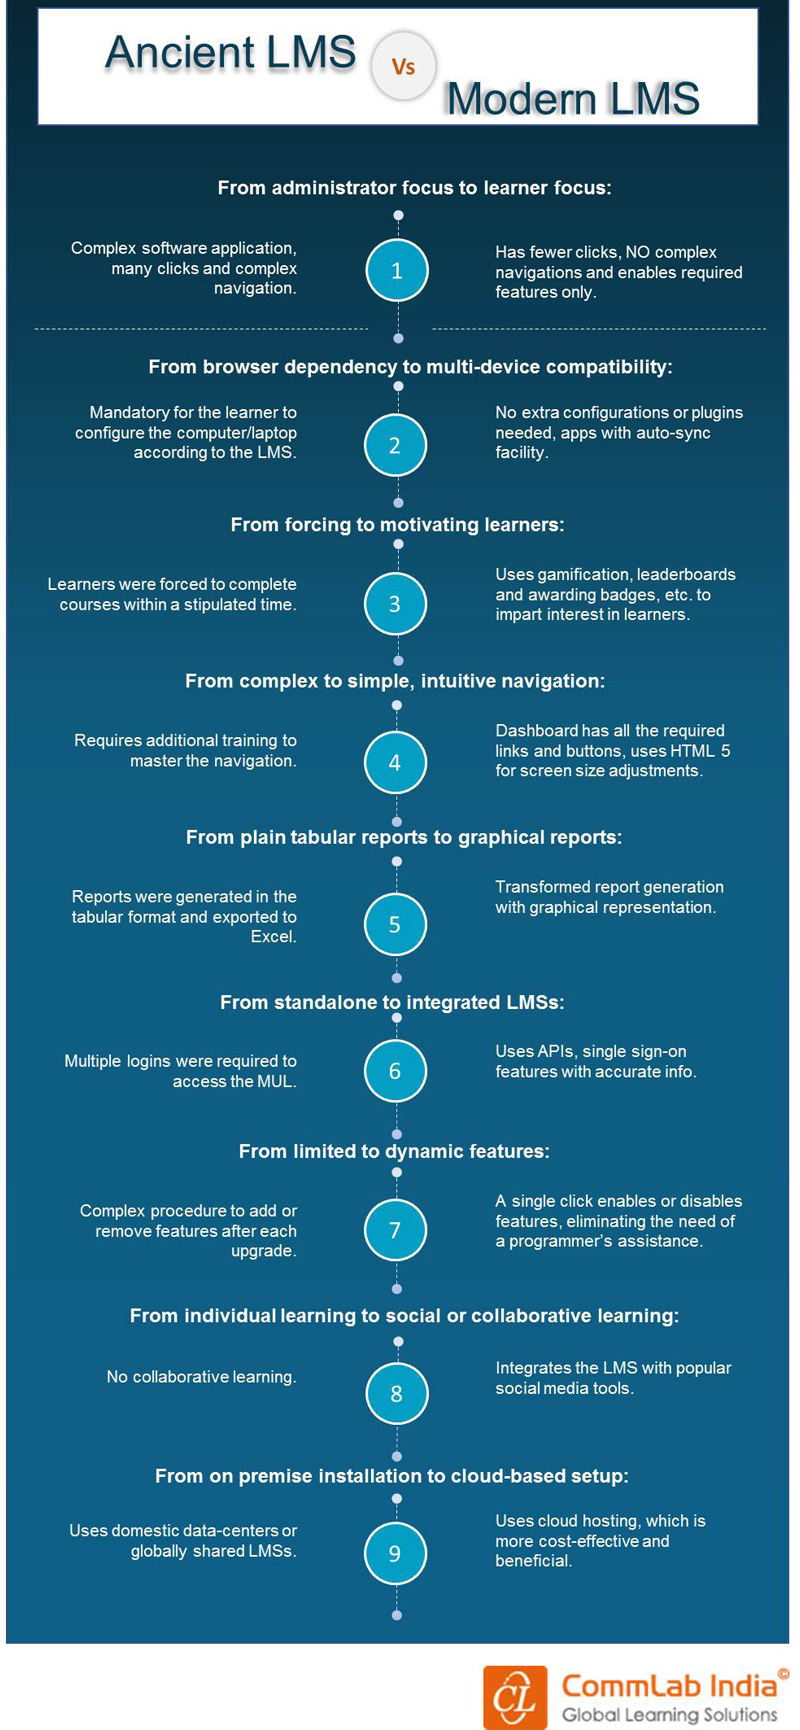 Ancient Vs Modern LMSs: A Comparison [Infographic]